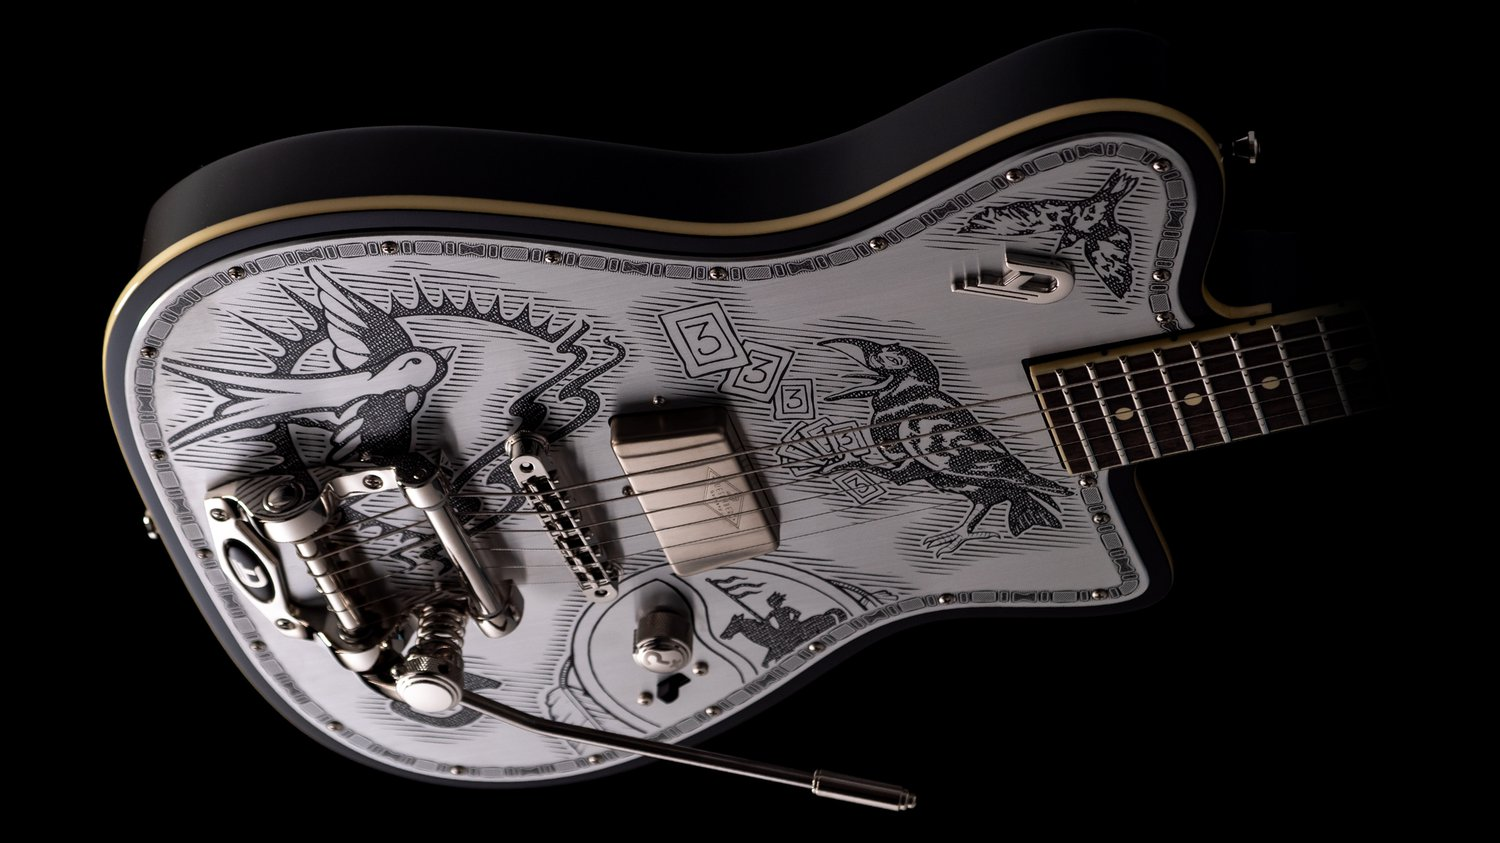 Angled view of the Duesenberg Alliance Series Johnny Depp